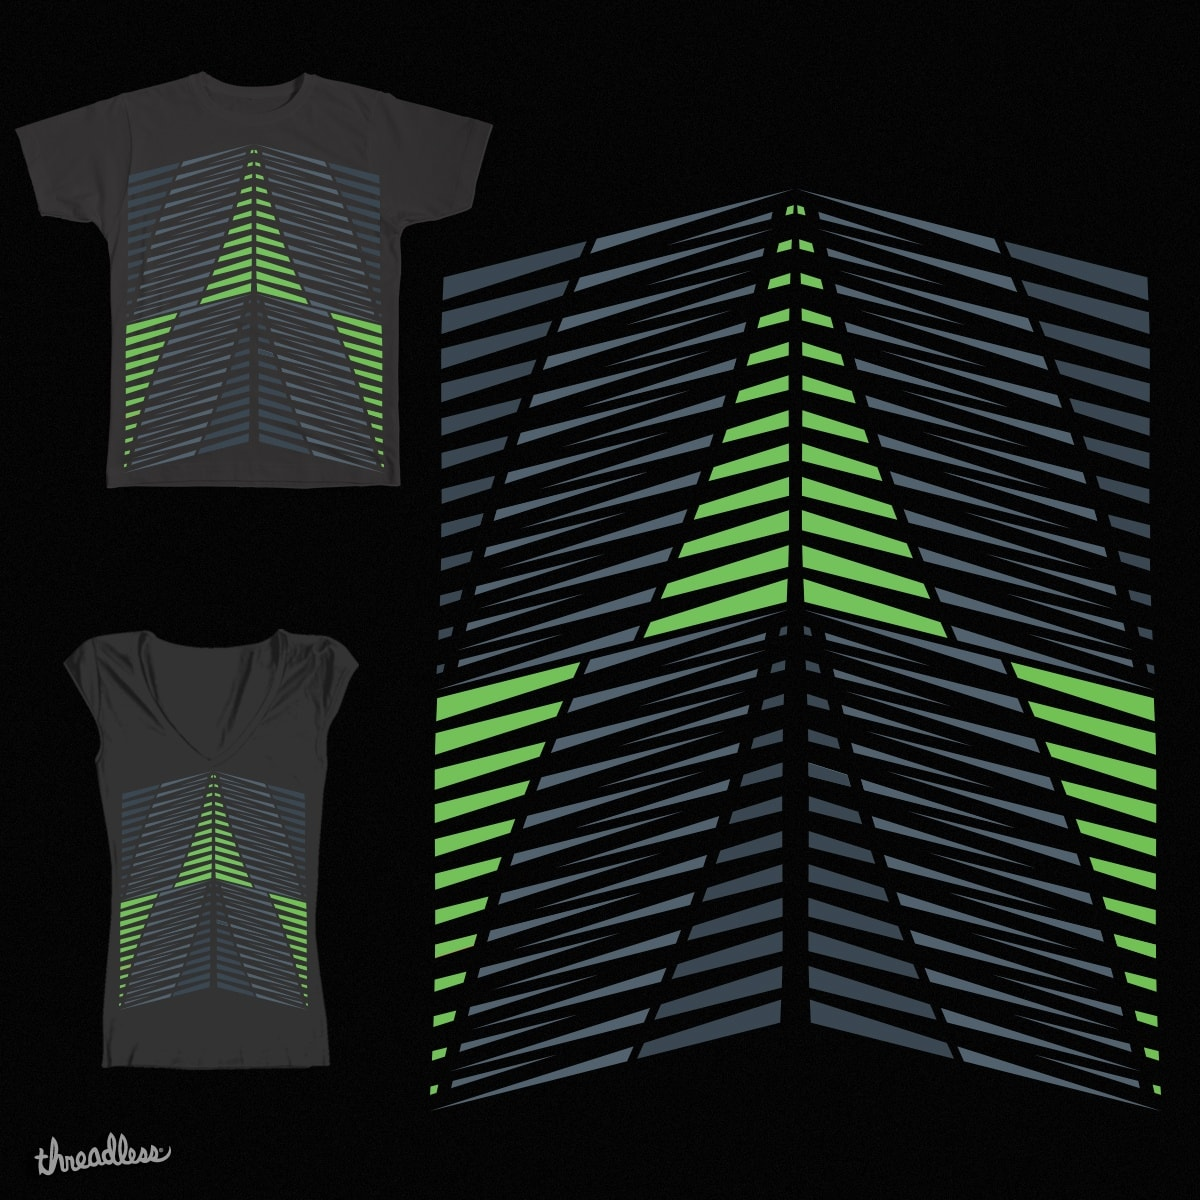 Abstract Staircase by EarthLotus96 on Threadless